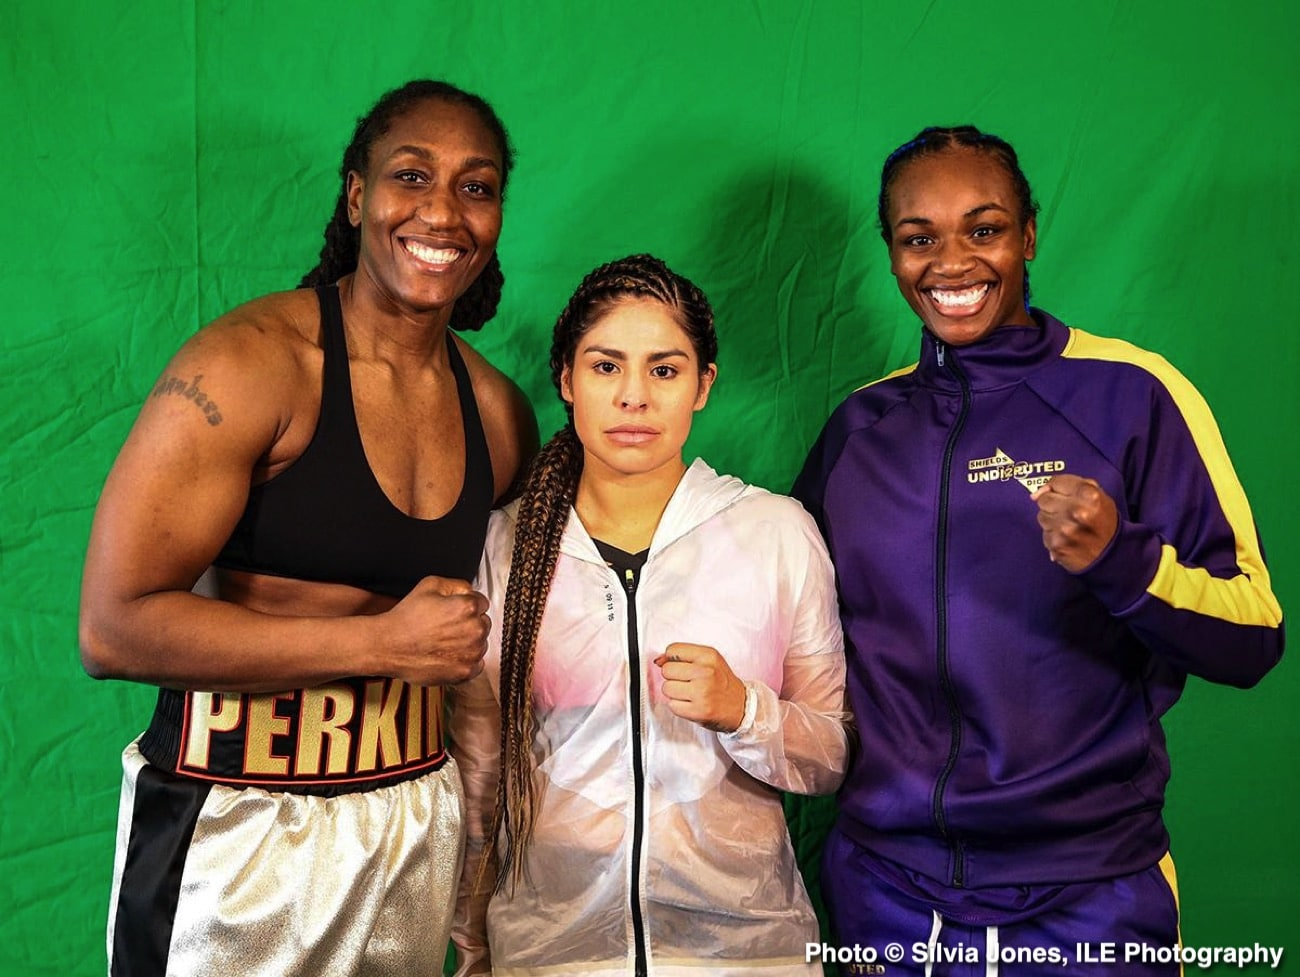 Claressa Shields, Marie-Ève Dicaire - Press Room